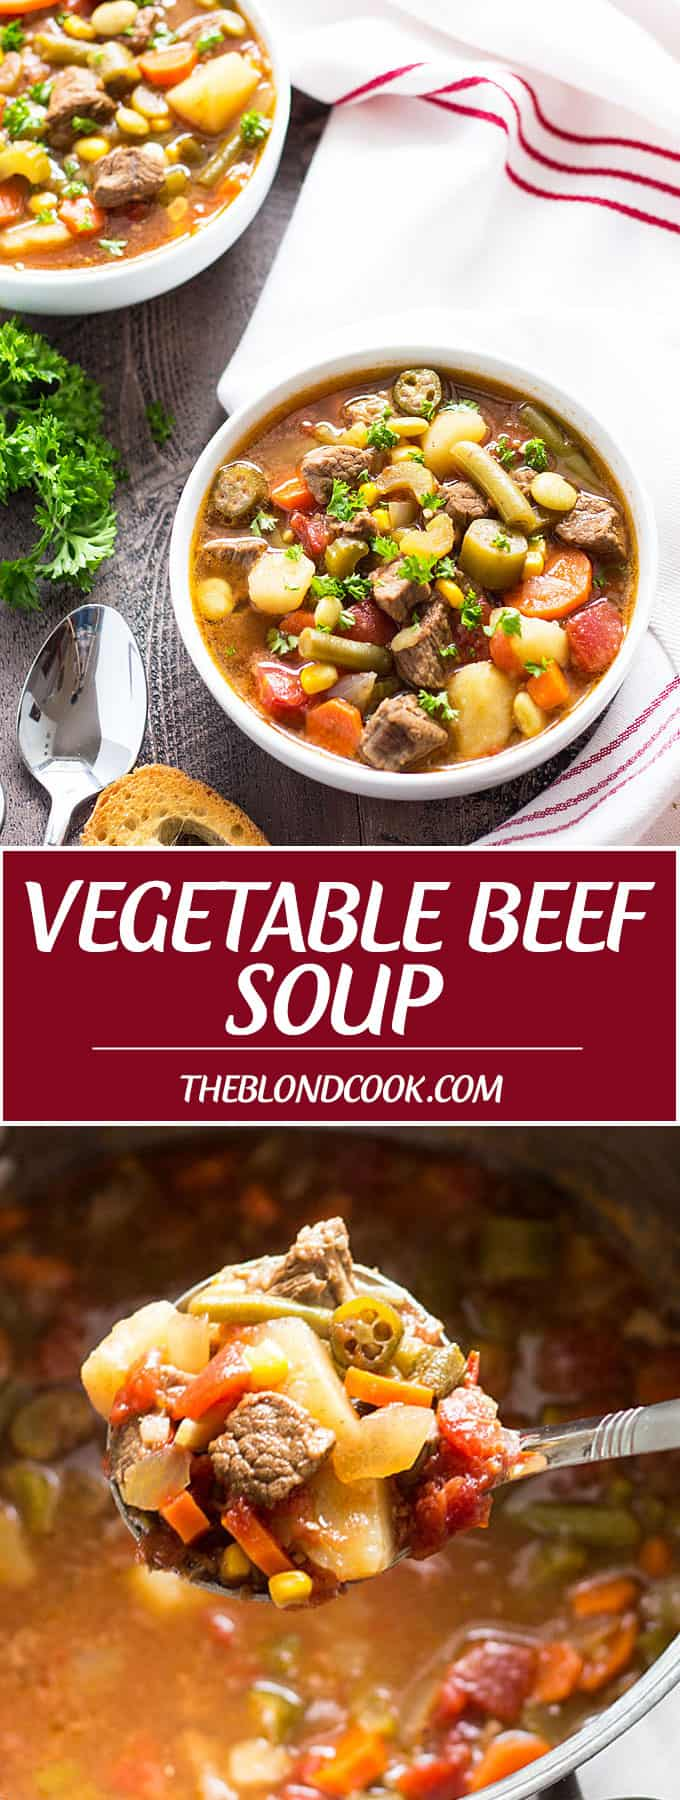 Homemade Vegetable Beef Soup -- A hearty soup full of beef and veggies!